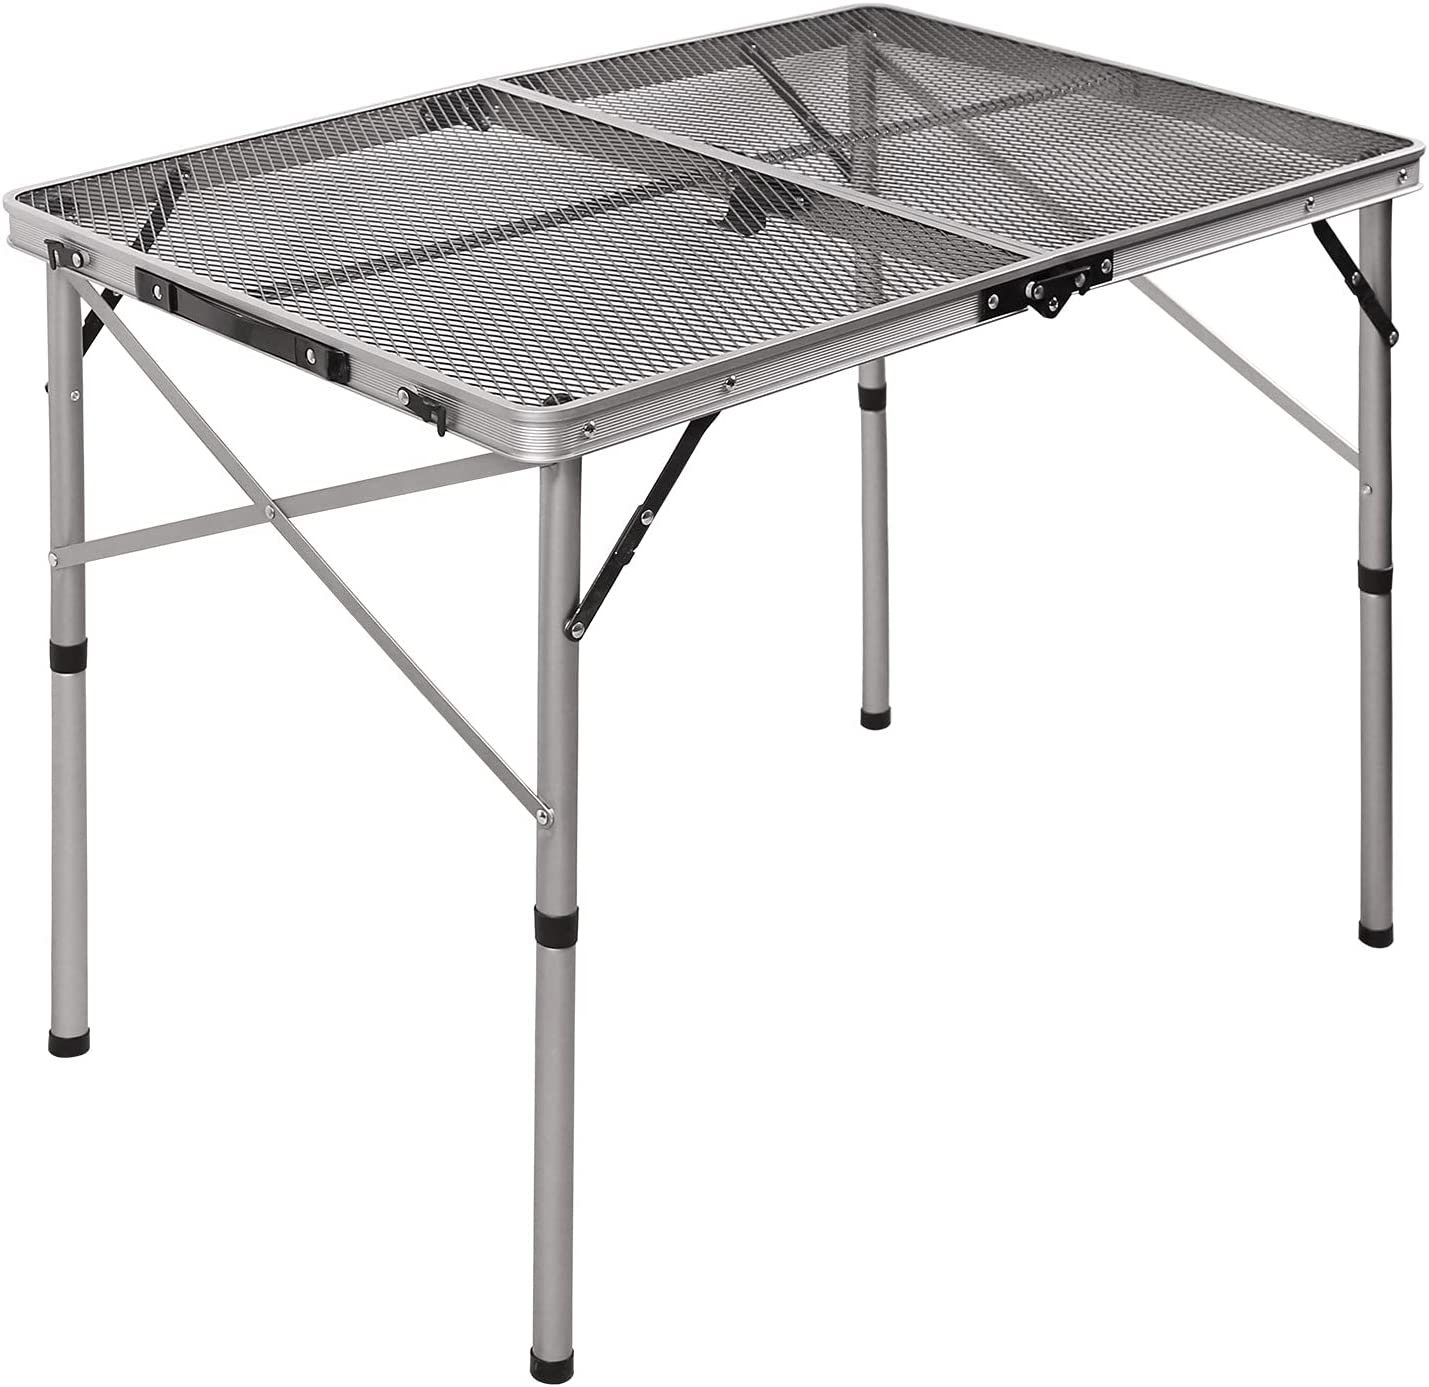 3ft Folding Grill Mail order Table for Camping Height Max 82% OFF Adjustable Ligh